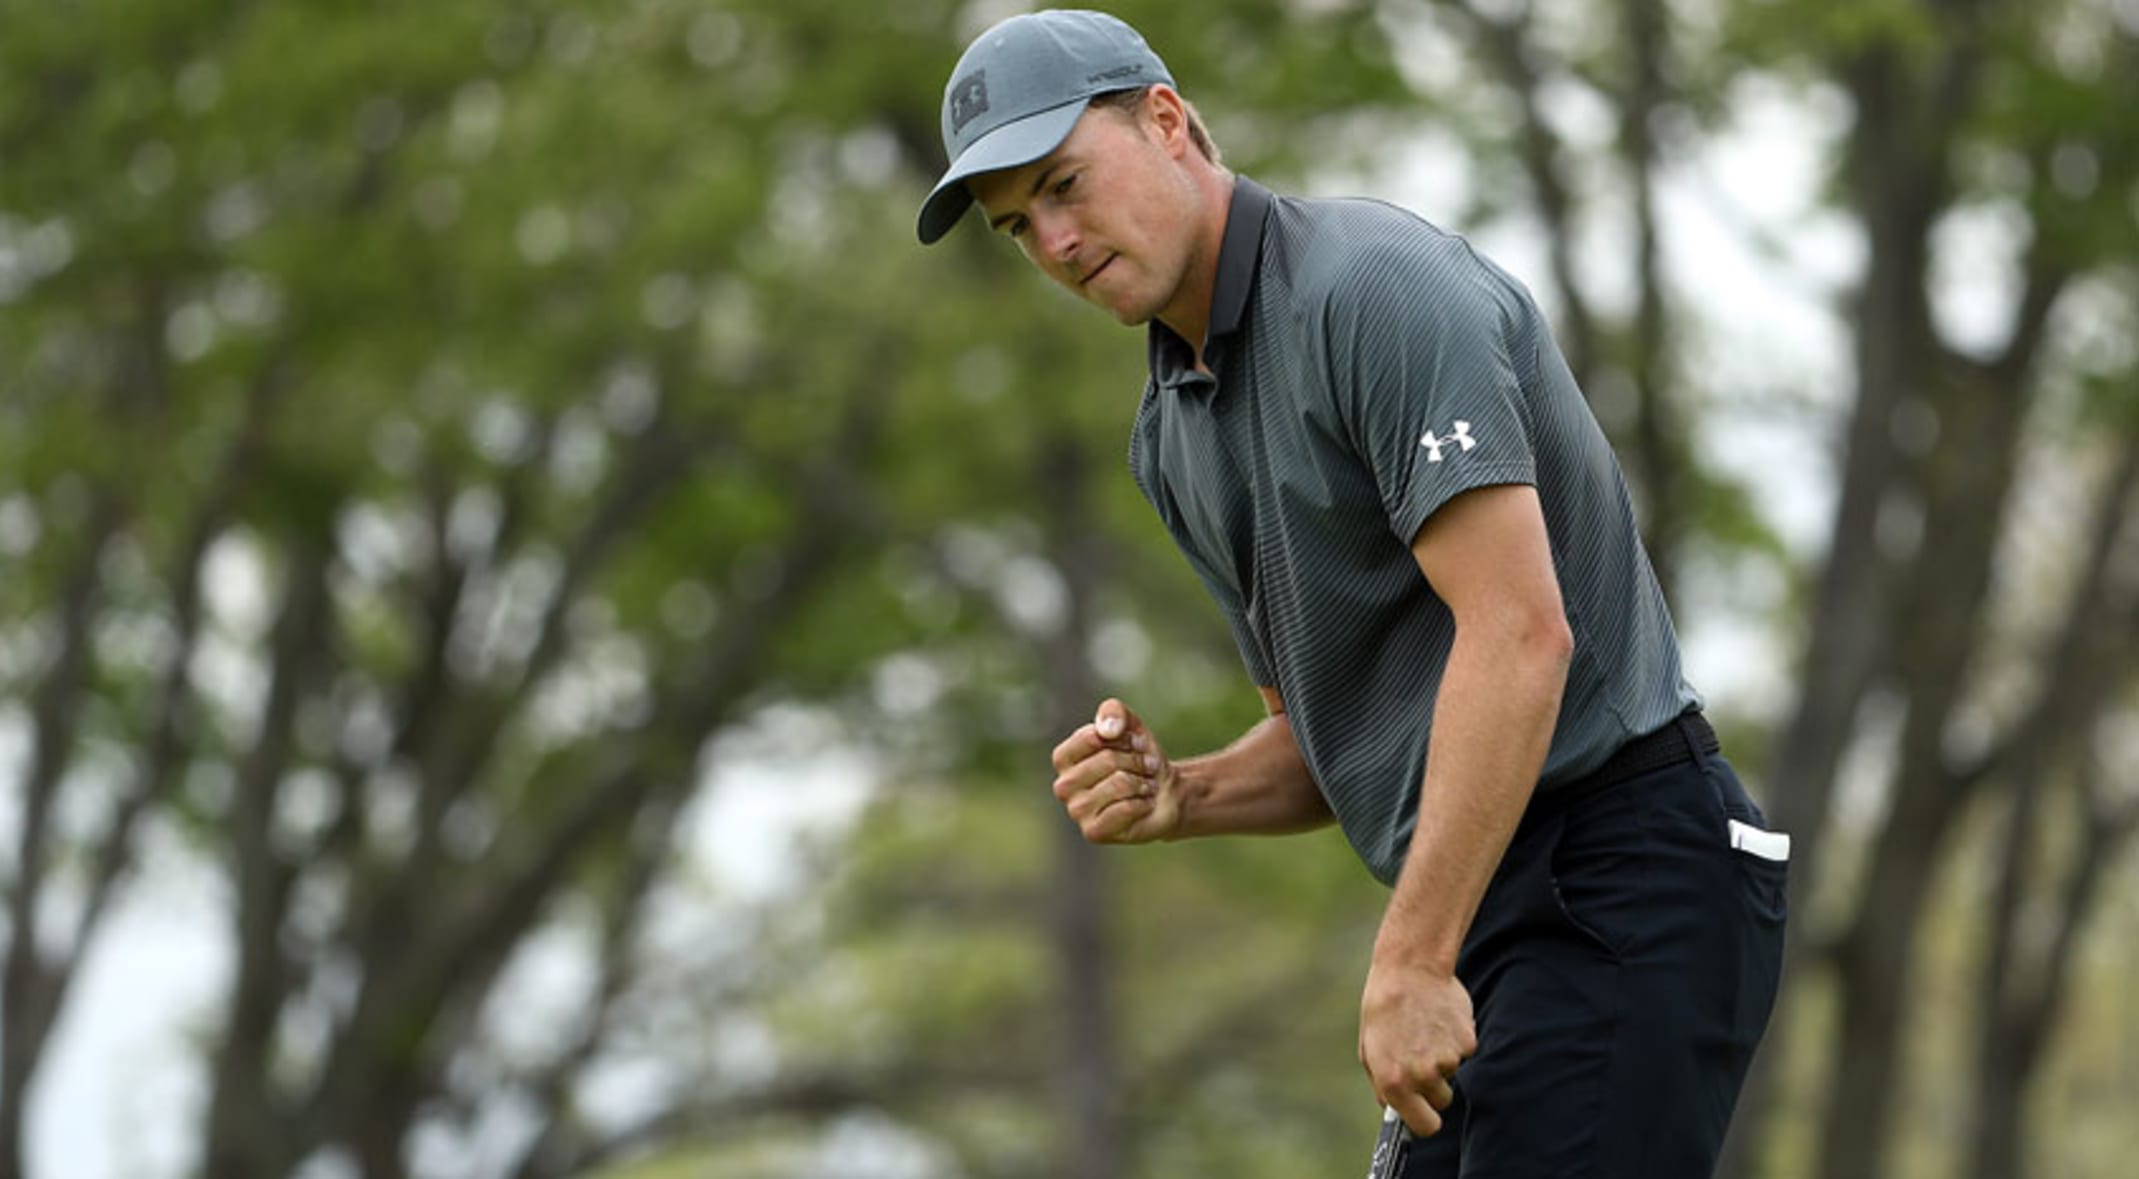 0349c352df5 Jordan Spieth picked up his first top 10 of the season finishing T3 at the  PGA